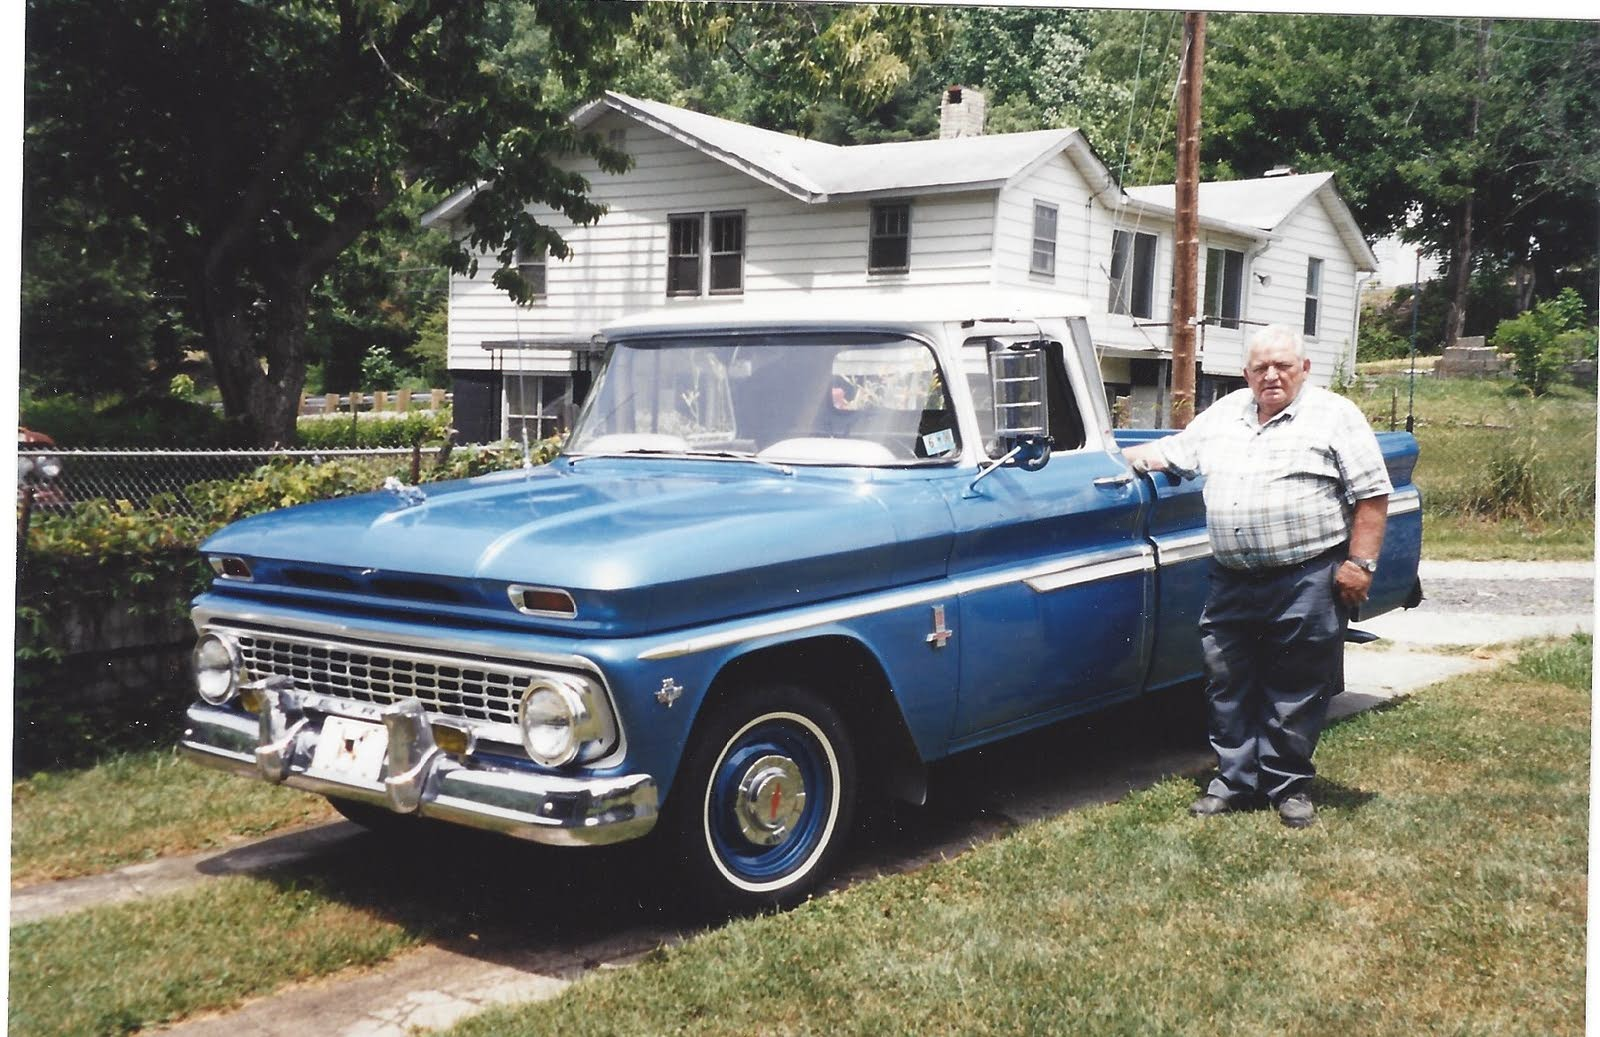 Chevrolet C/K 10 Questions - I steam cleaned my 63 c10 and